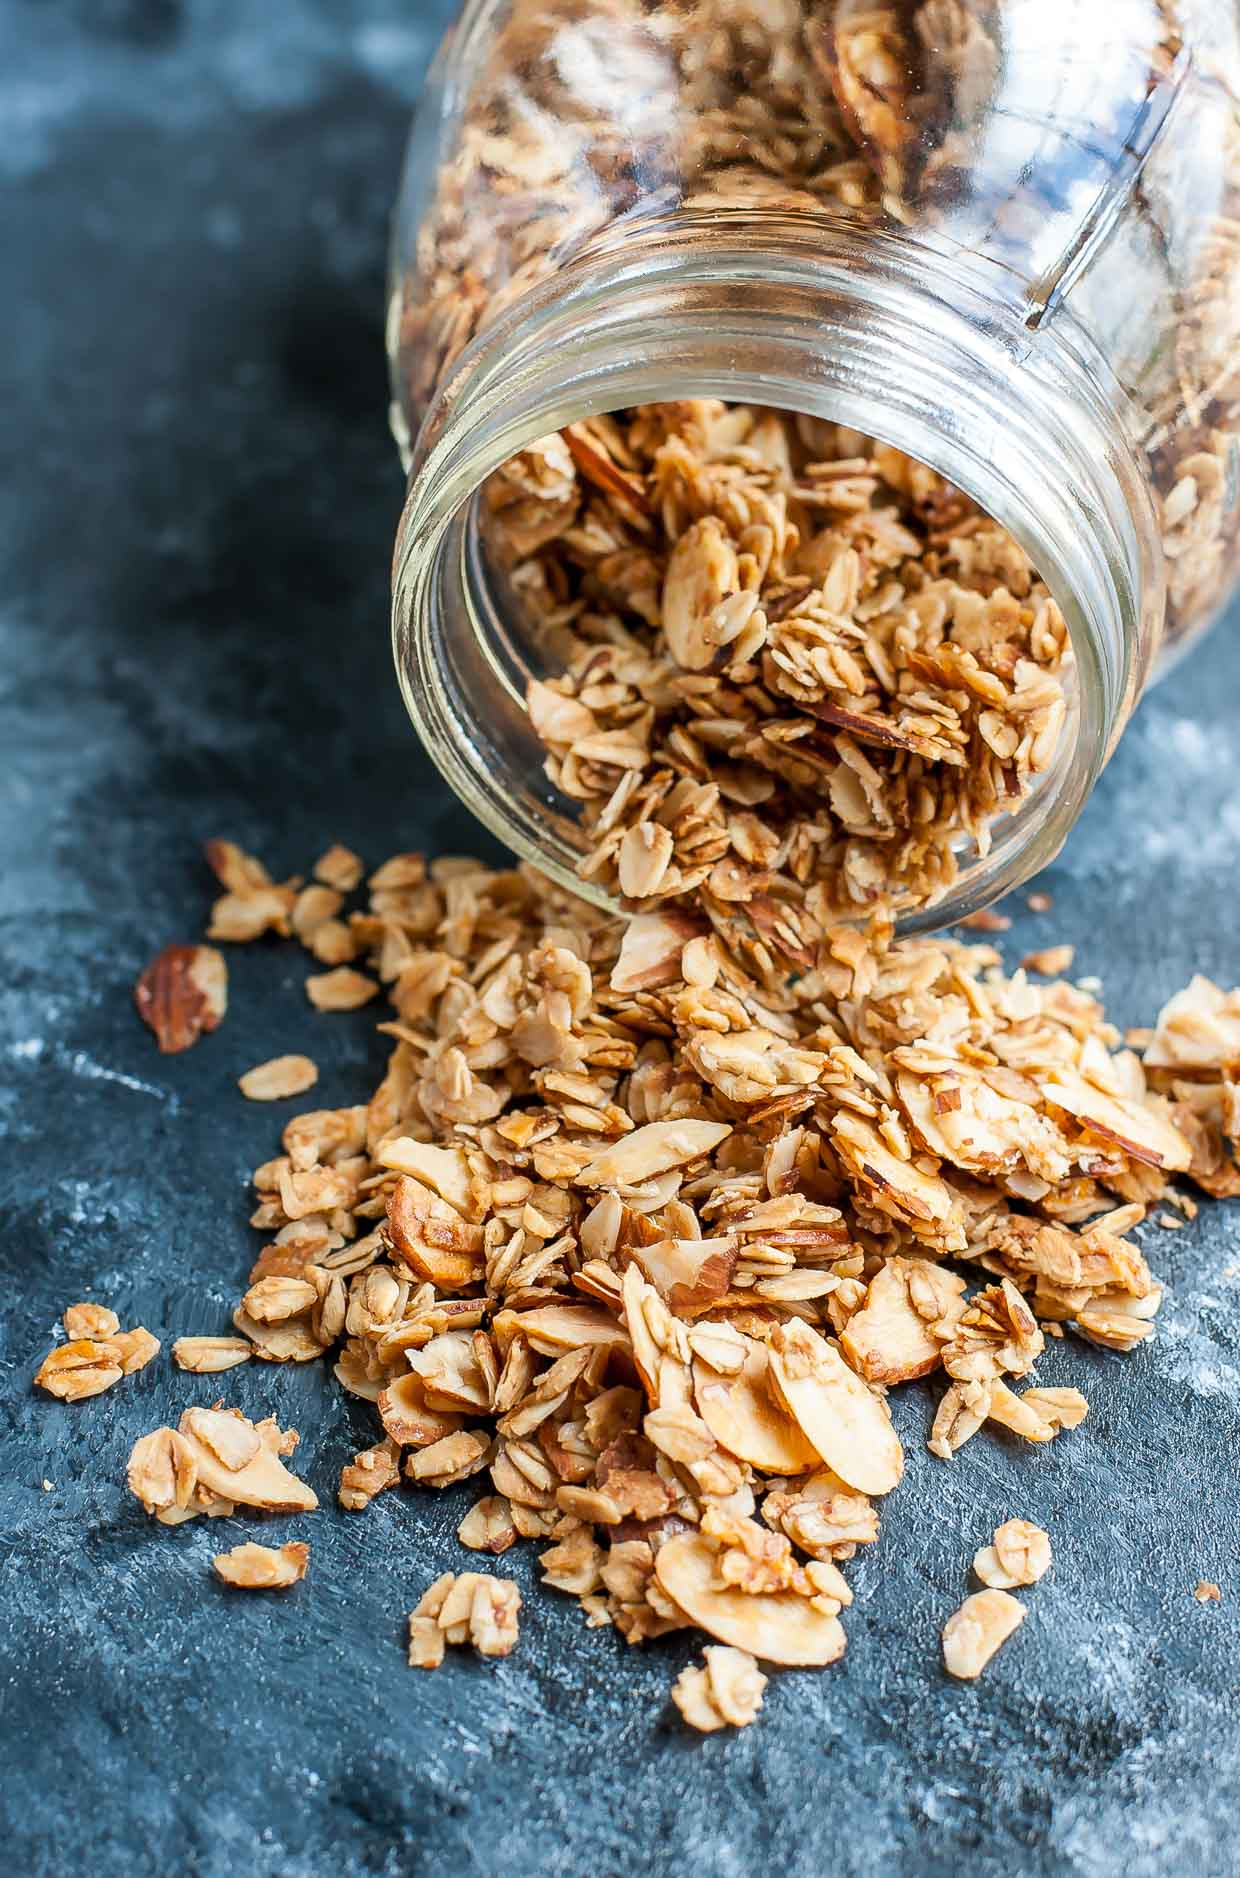 Healthy Homemade Granola Recipe - Peas